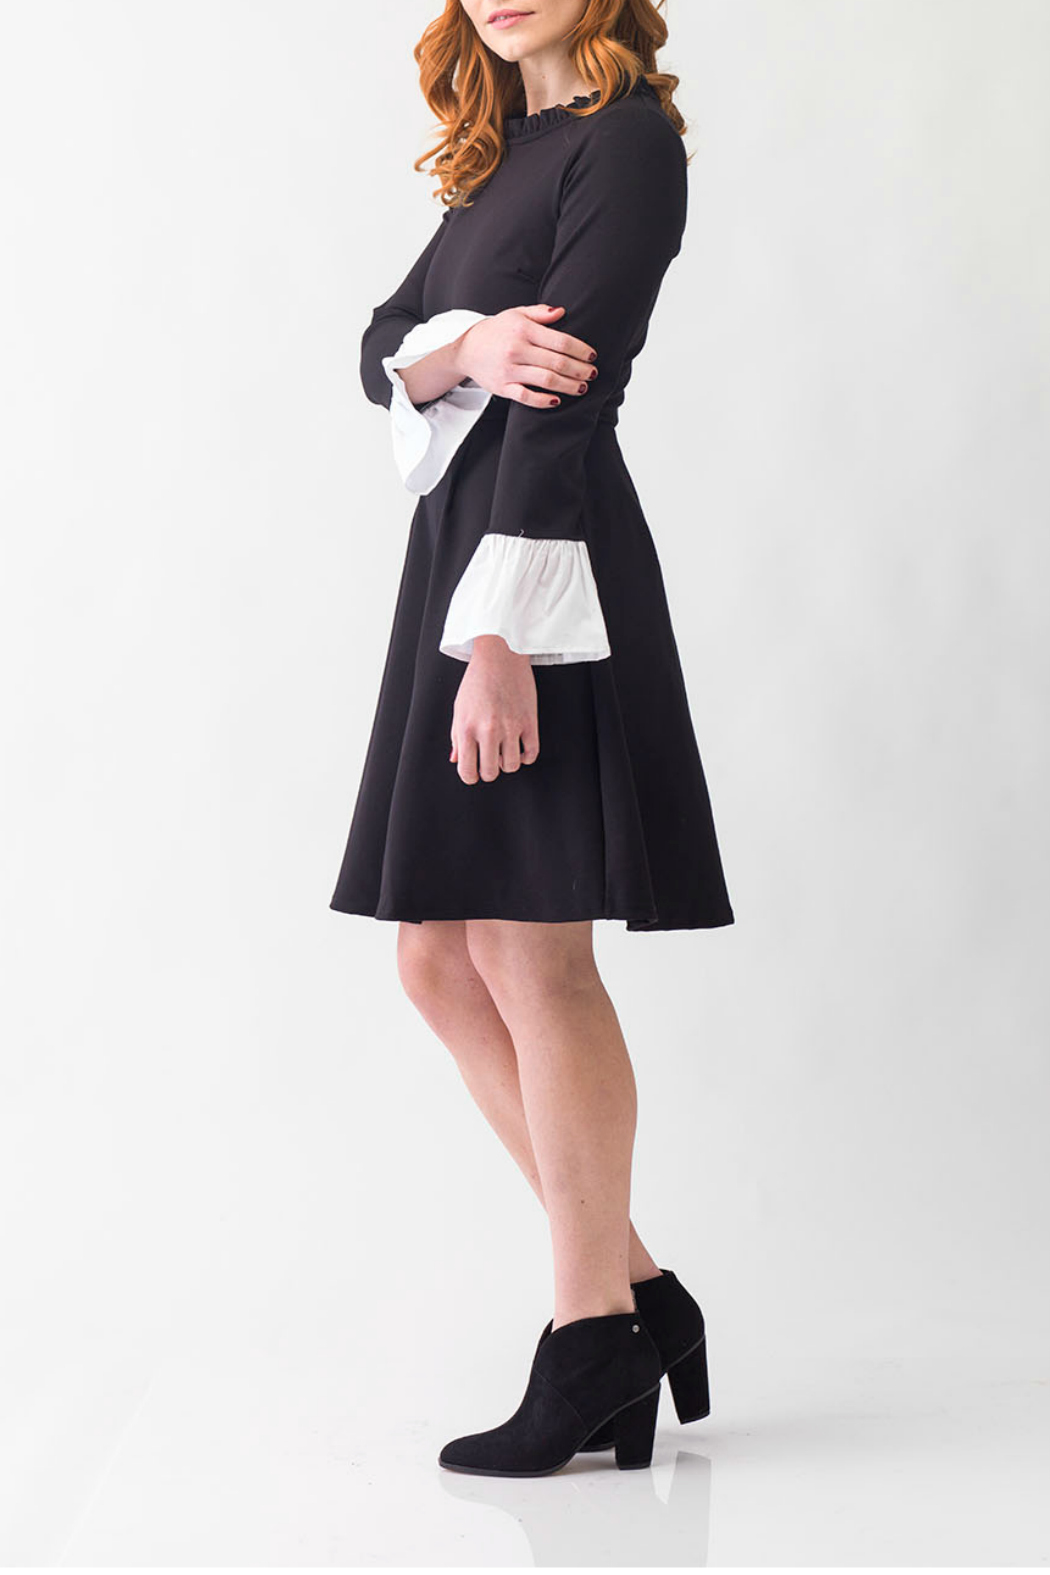 Smak Parlour Black and white dress - Side Cropped Image